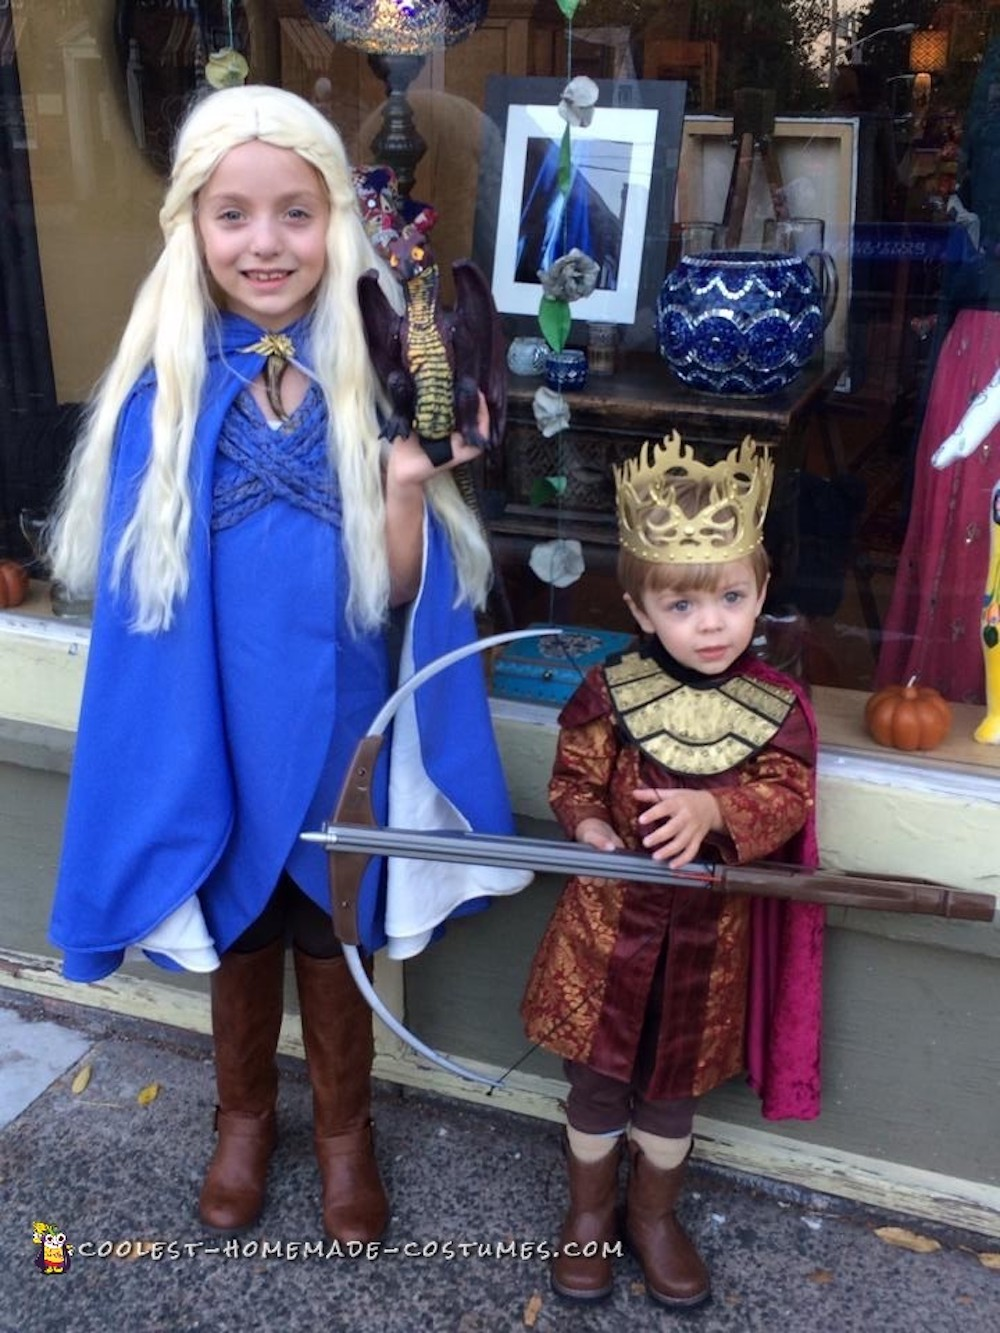 Kids' Game of Thrones costume ideas: How to make Khaleesi and Joffrey